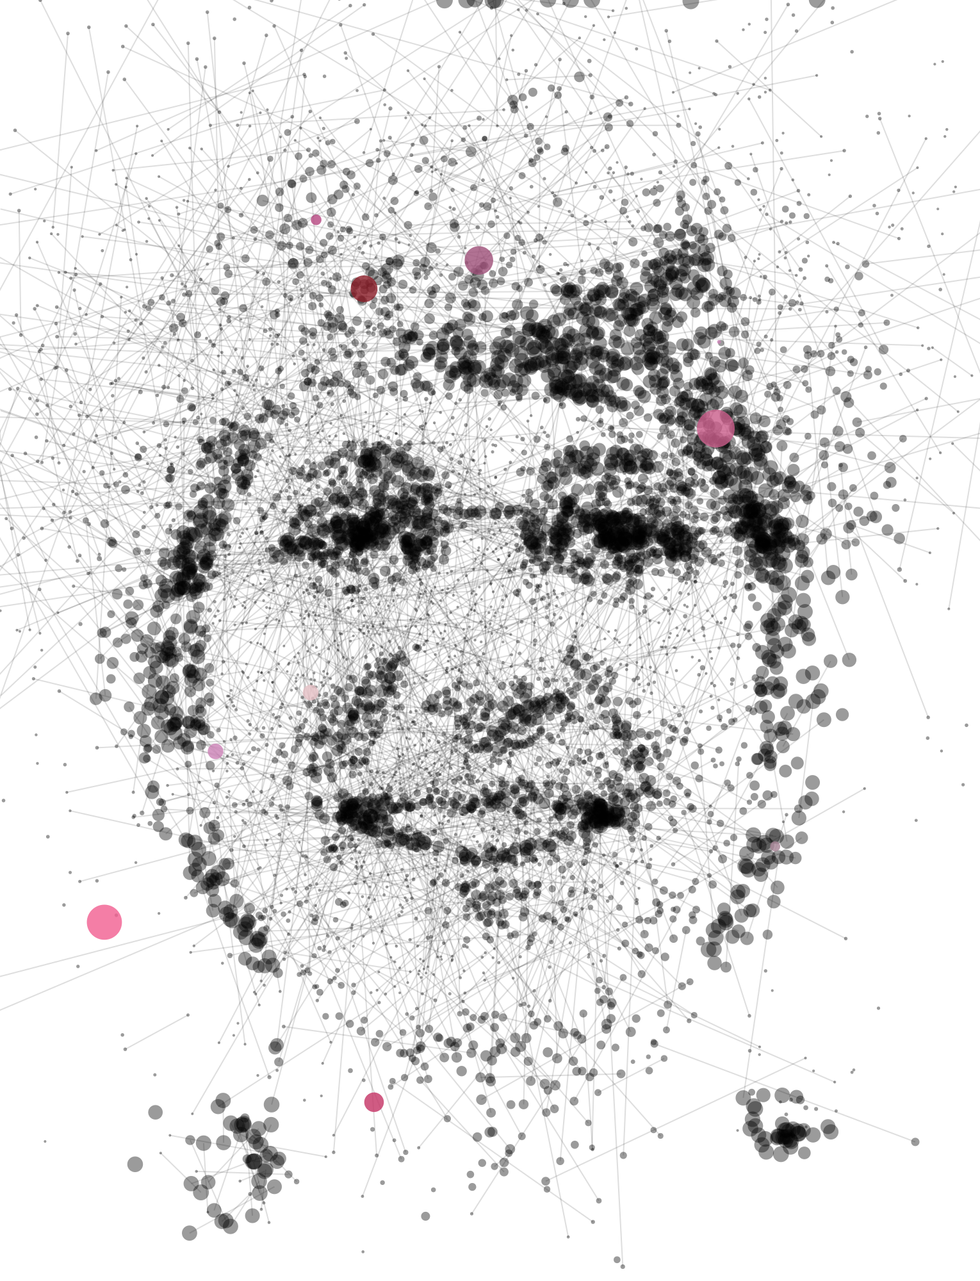 Illustration of Manuela Veloso made of dots and lines.